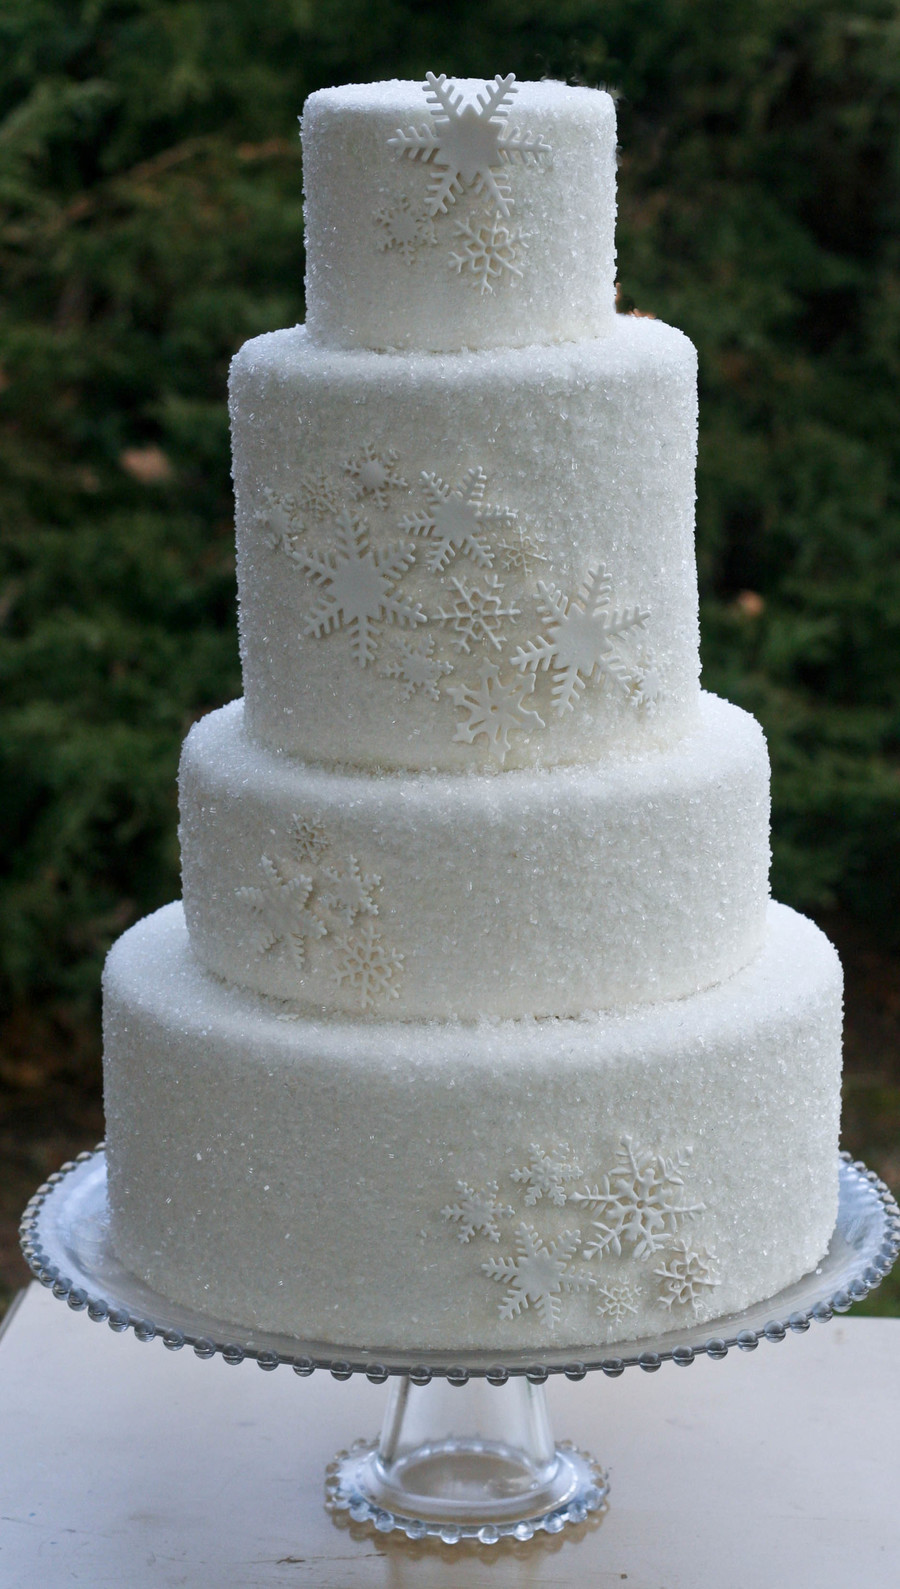 How To Use Sanding Sugar On Cakes